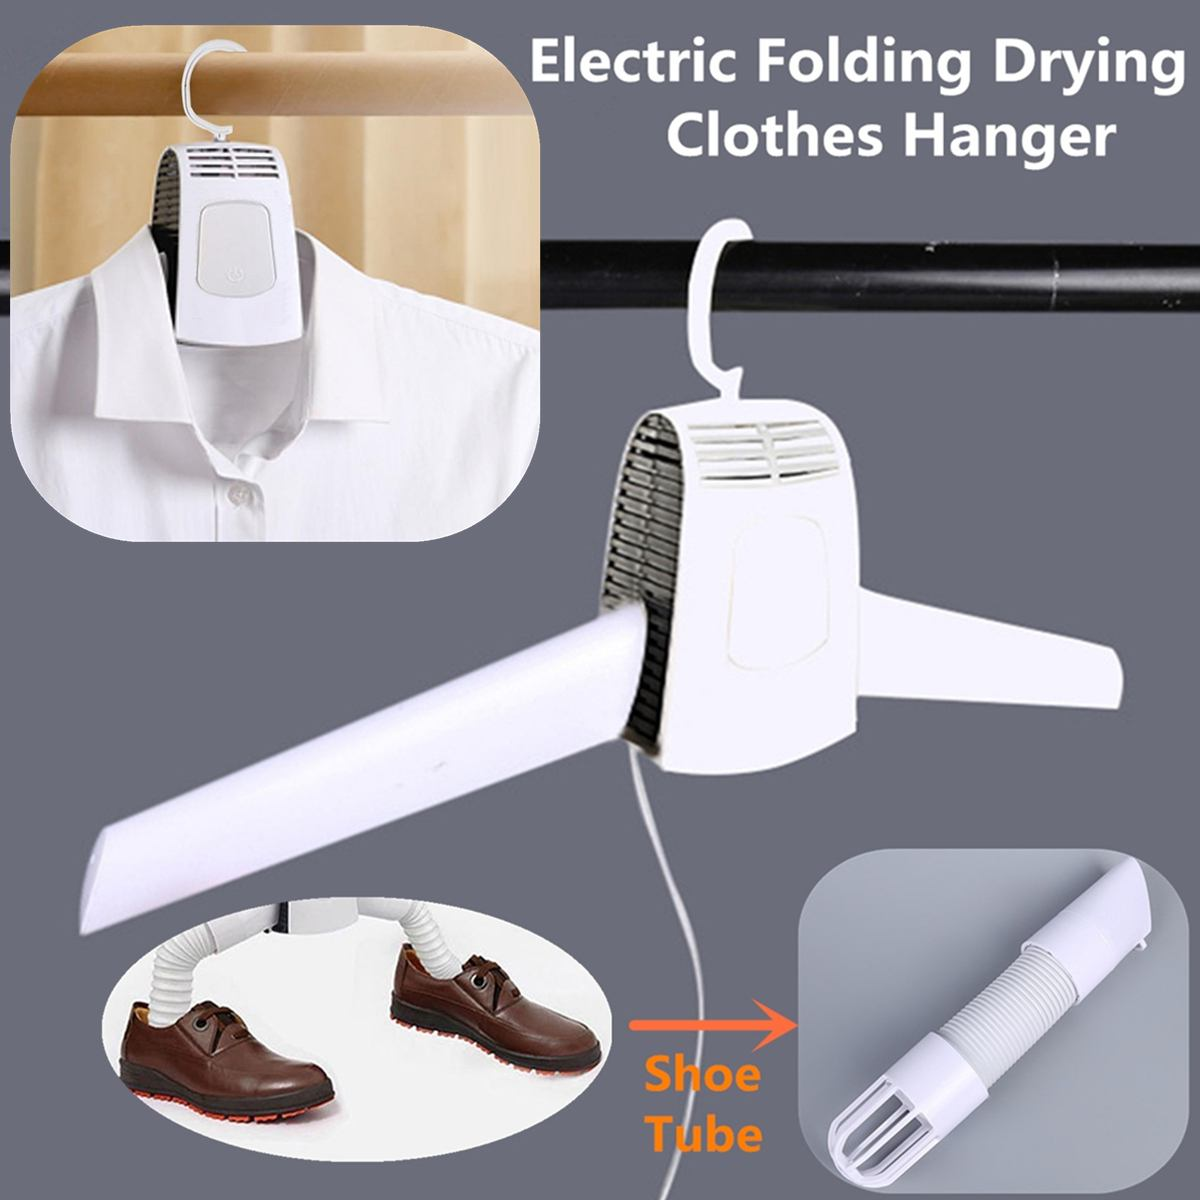 1pcs Electric Clothes Drying Rack Smart Hang Clothes Dryer Portable Outdoor Travel Mini Folding Available Clothing Shoes Heater1pcs Electric Clothes Drying Rack Smart Hang Clothes Dryer Portable Outdoor Travel Mini Folding Available Clothing Shoes Heater